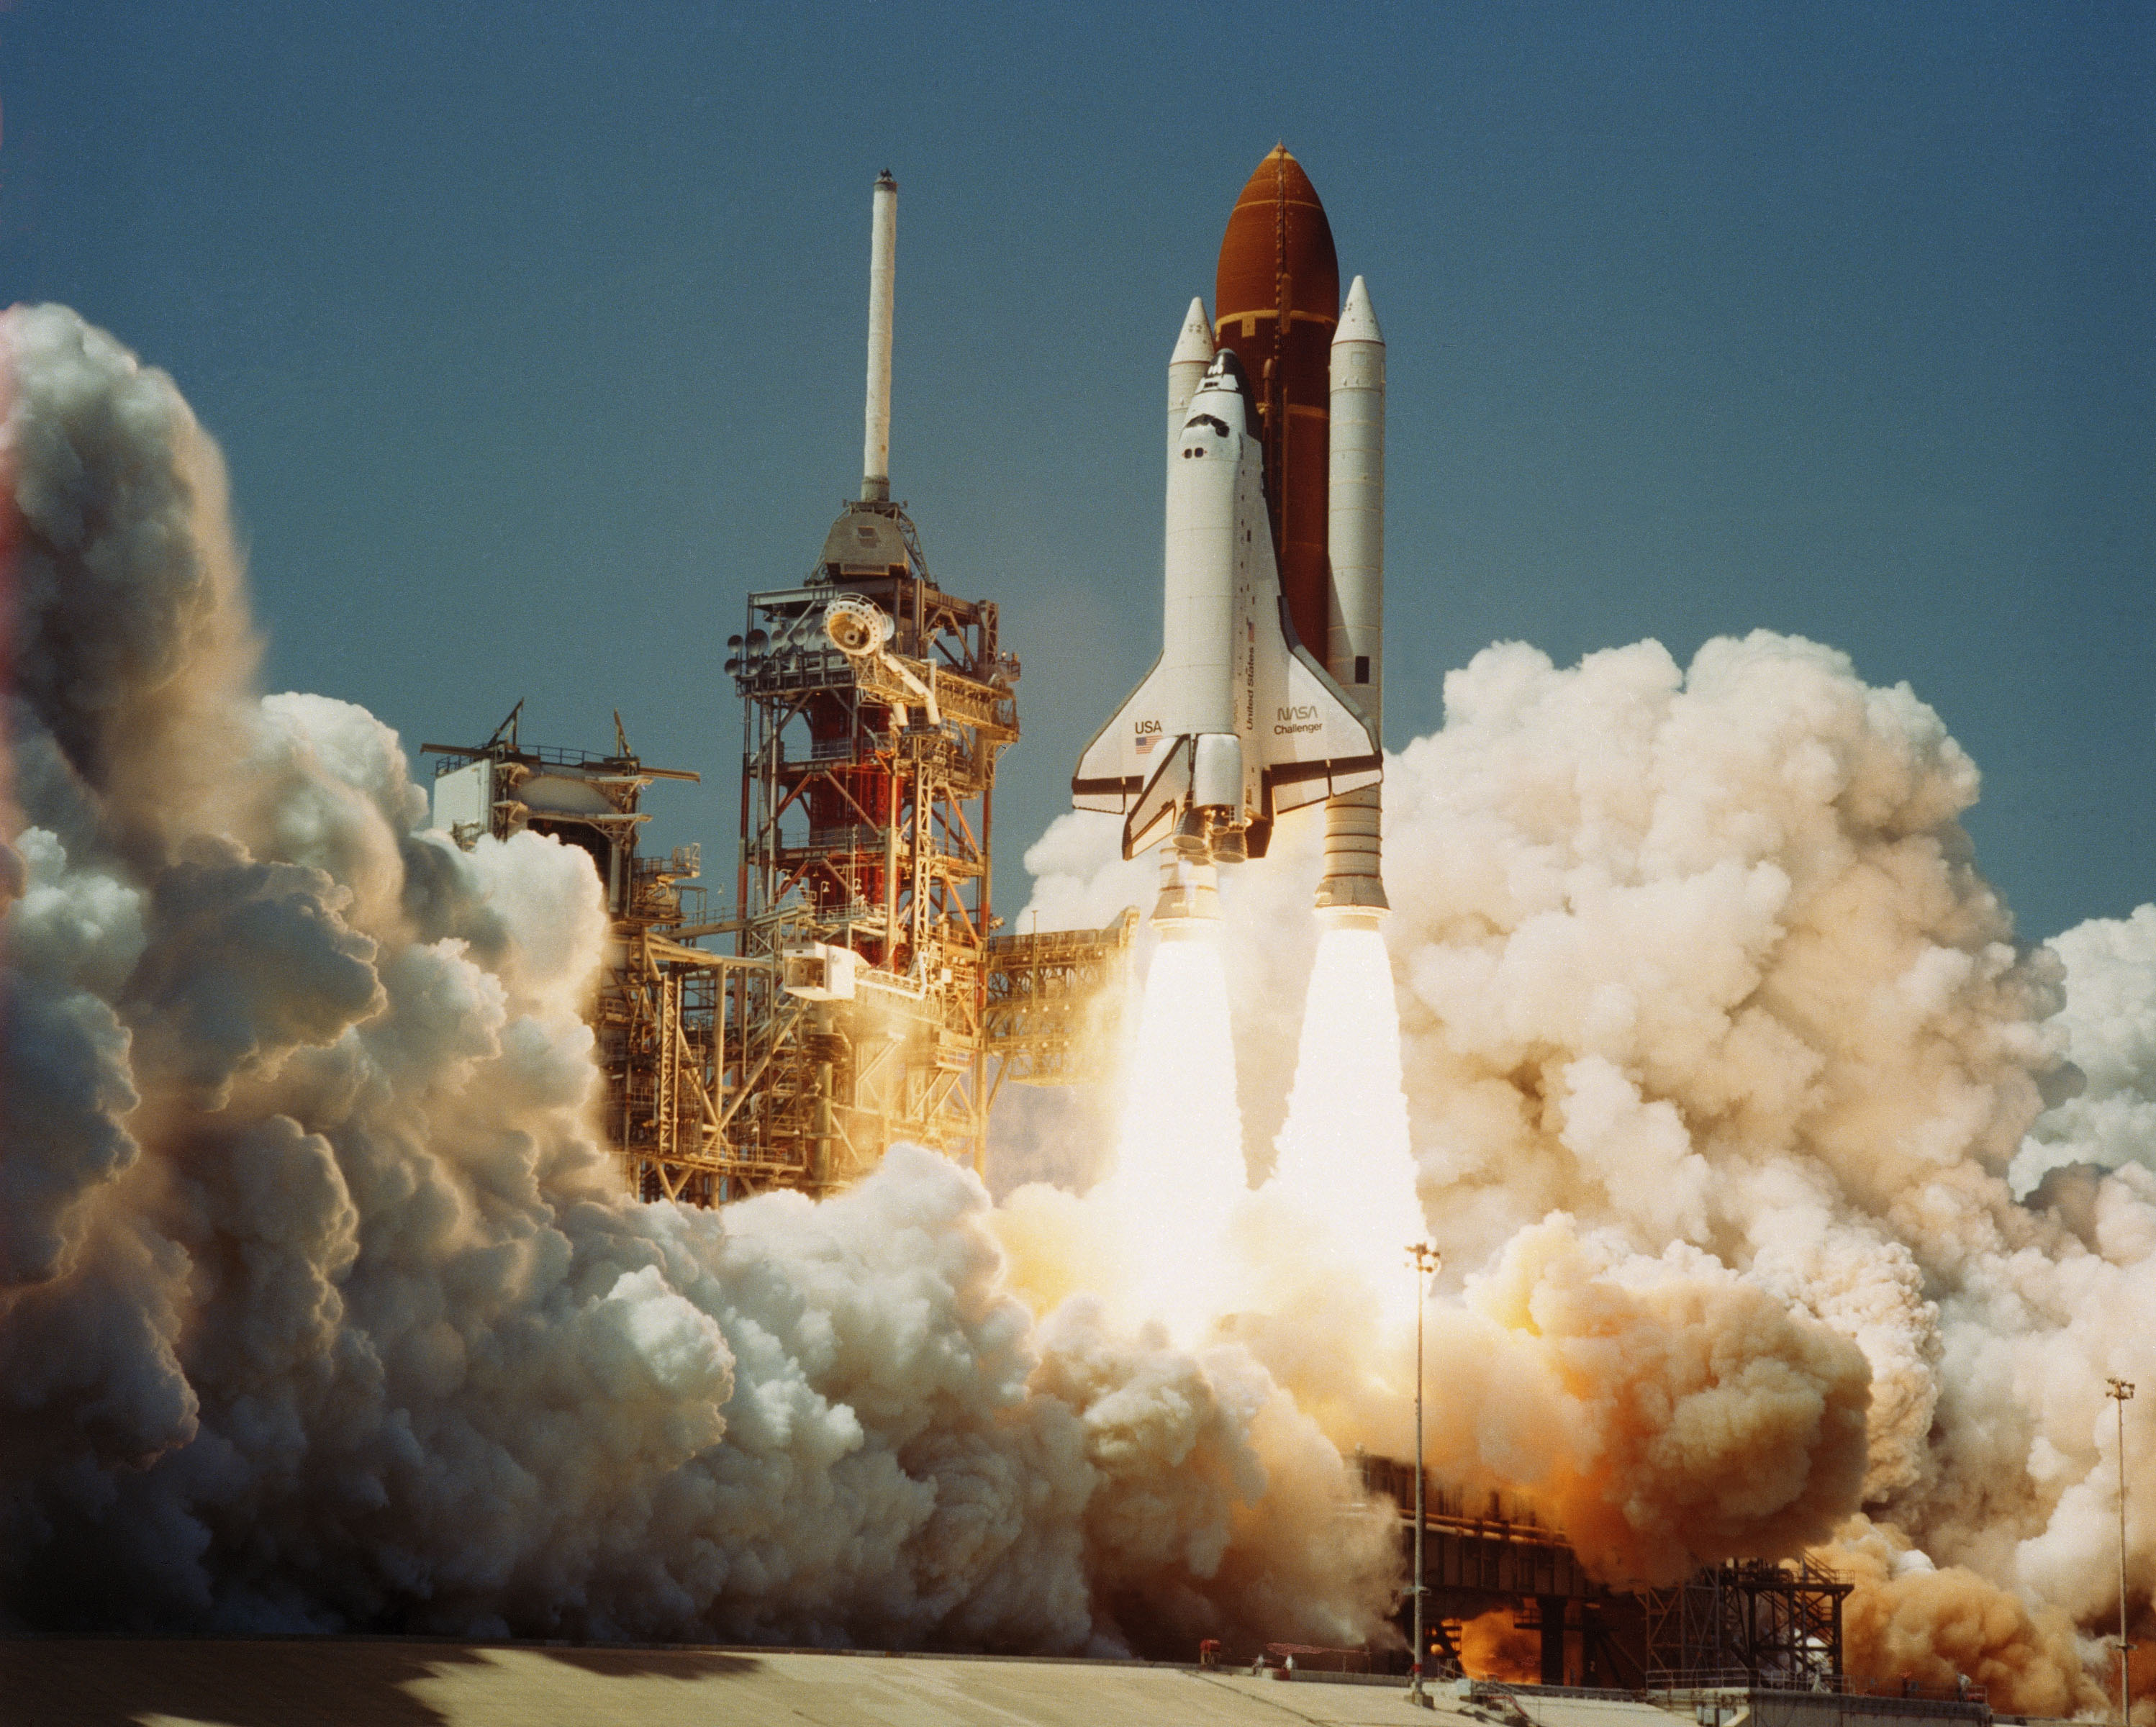 A space shuttle, the Challenger, in take off, showing flames exiting rockets and surrounded by billowing clouds created by smoke. Space Transportation System Number 6, Orbiter Challenger, lifts off from Pad 39A carrying astronauts Paul J. Weitz, Koral J. Bobko, Donald H. Peterson and Dr. Story Musgrave.